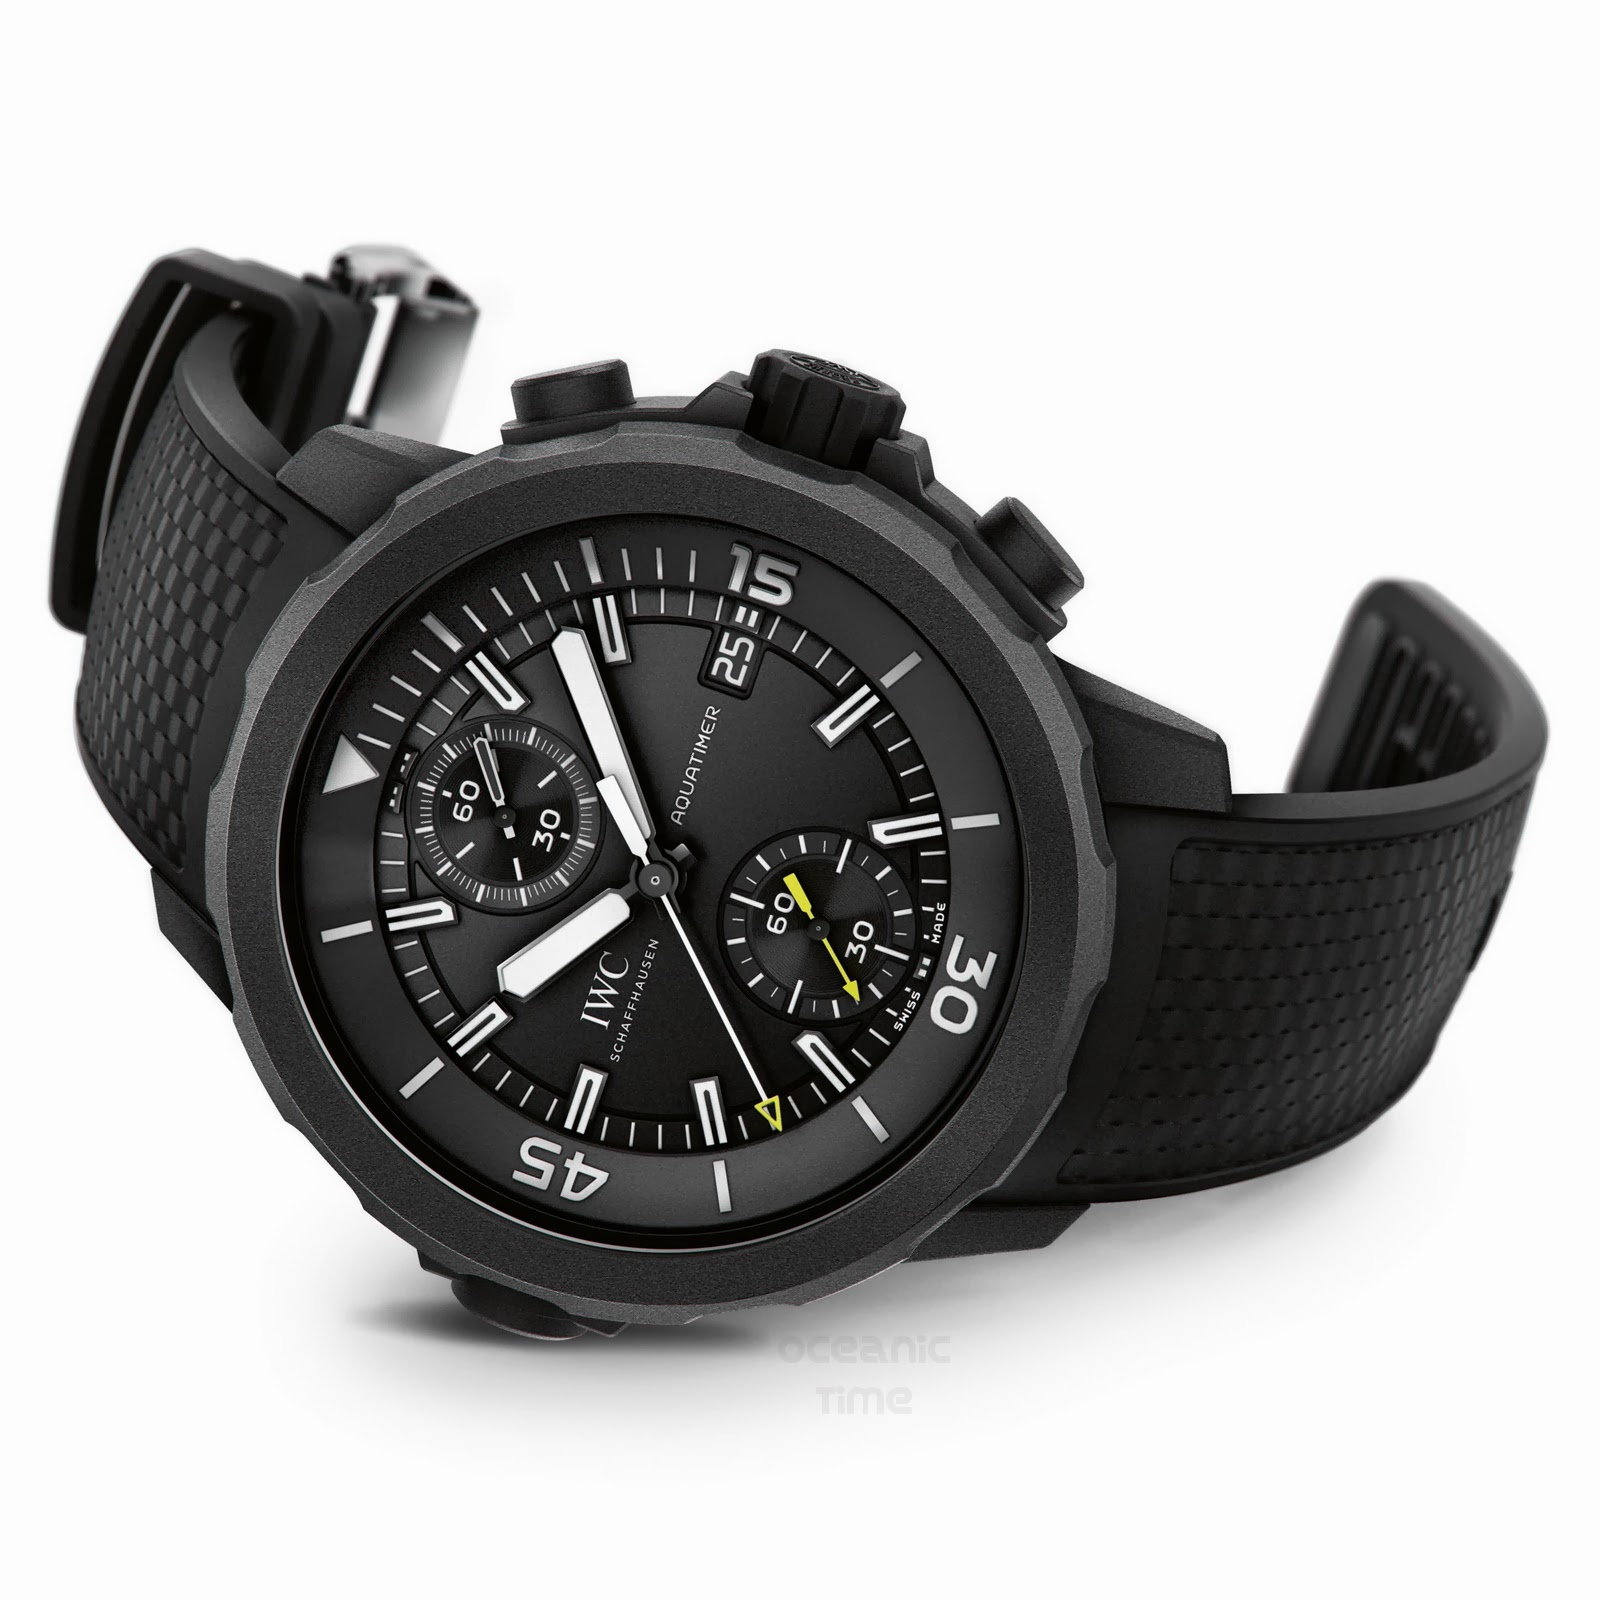 IWC Aquatimer Chronographe Galapagos Islands - IW379502